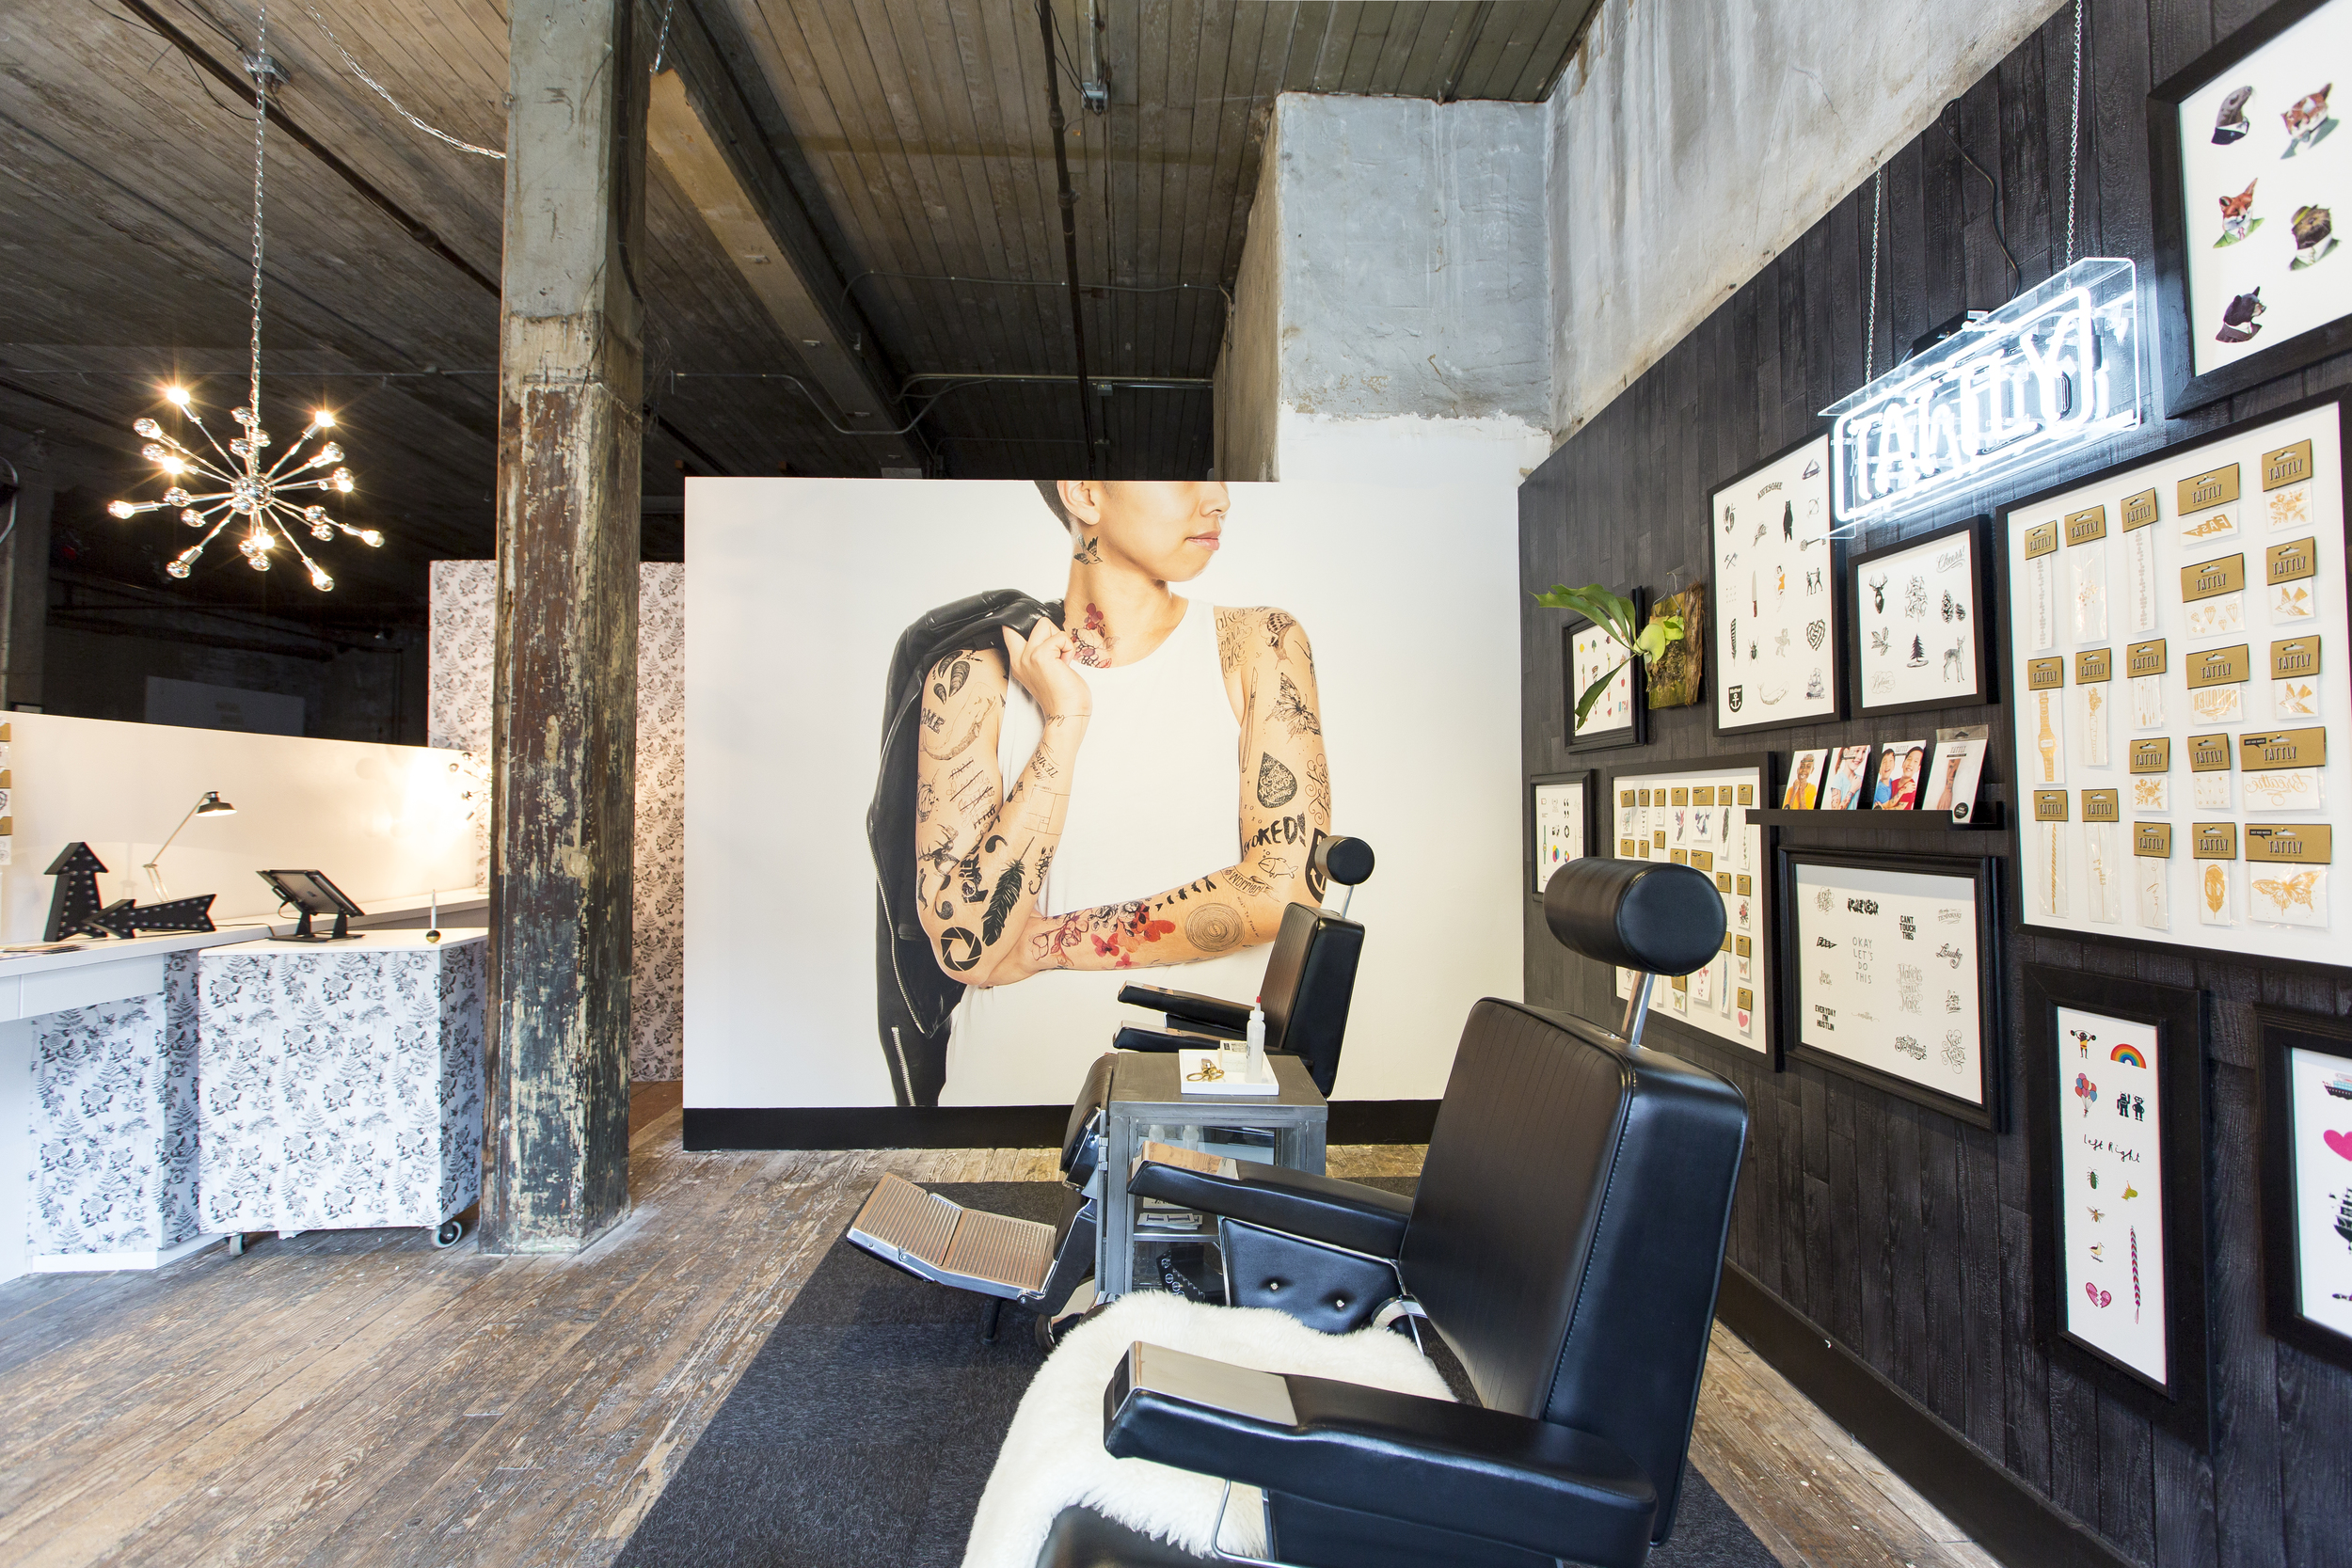 a full service tattly temporary tattoo parlor opens in